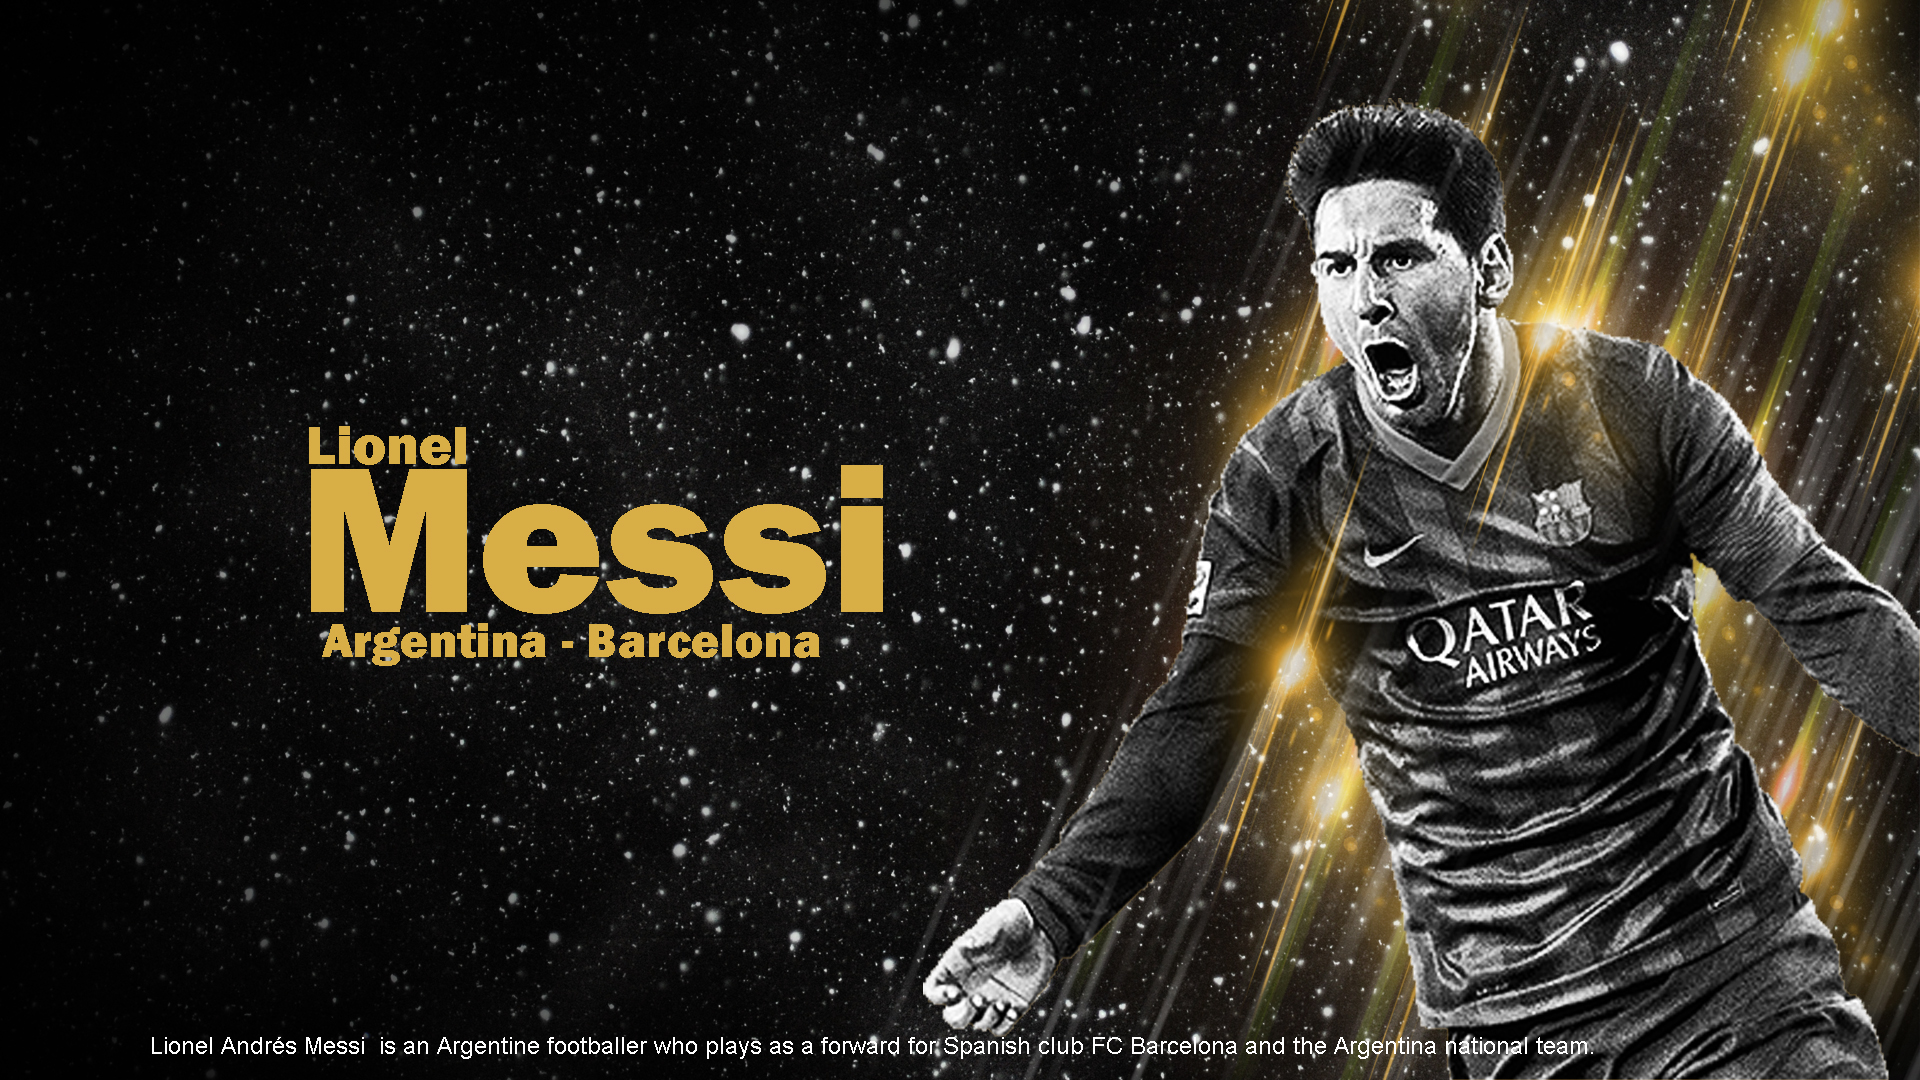 lionel messi wallpaper 2015 hd wallpapers hd images hd